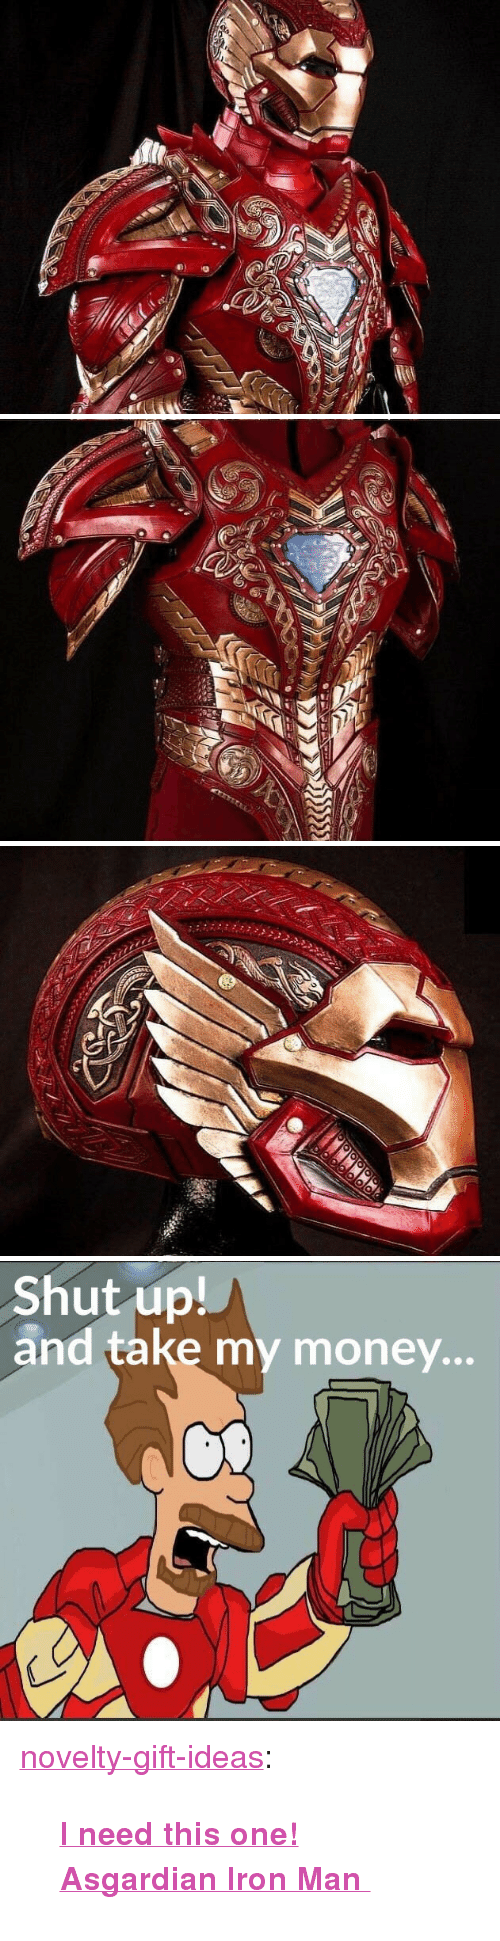 "Asgardian: Shut up!  and take my money... <p><a href=""https://novelty-gift-ideas.tumblr.com/post/160150765313/i-need-this-one-asgardian-iron-man"" class=""tumblr_blog"">novelty-gift-ideas</a>:</p><blockquote><p><b><a href=""https://novelty-gift-ideas.com/prince-armory-custom-creations/"">  I need this one! Asgardian Iron Man  </a></b><br/></p></blockquote>"